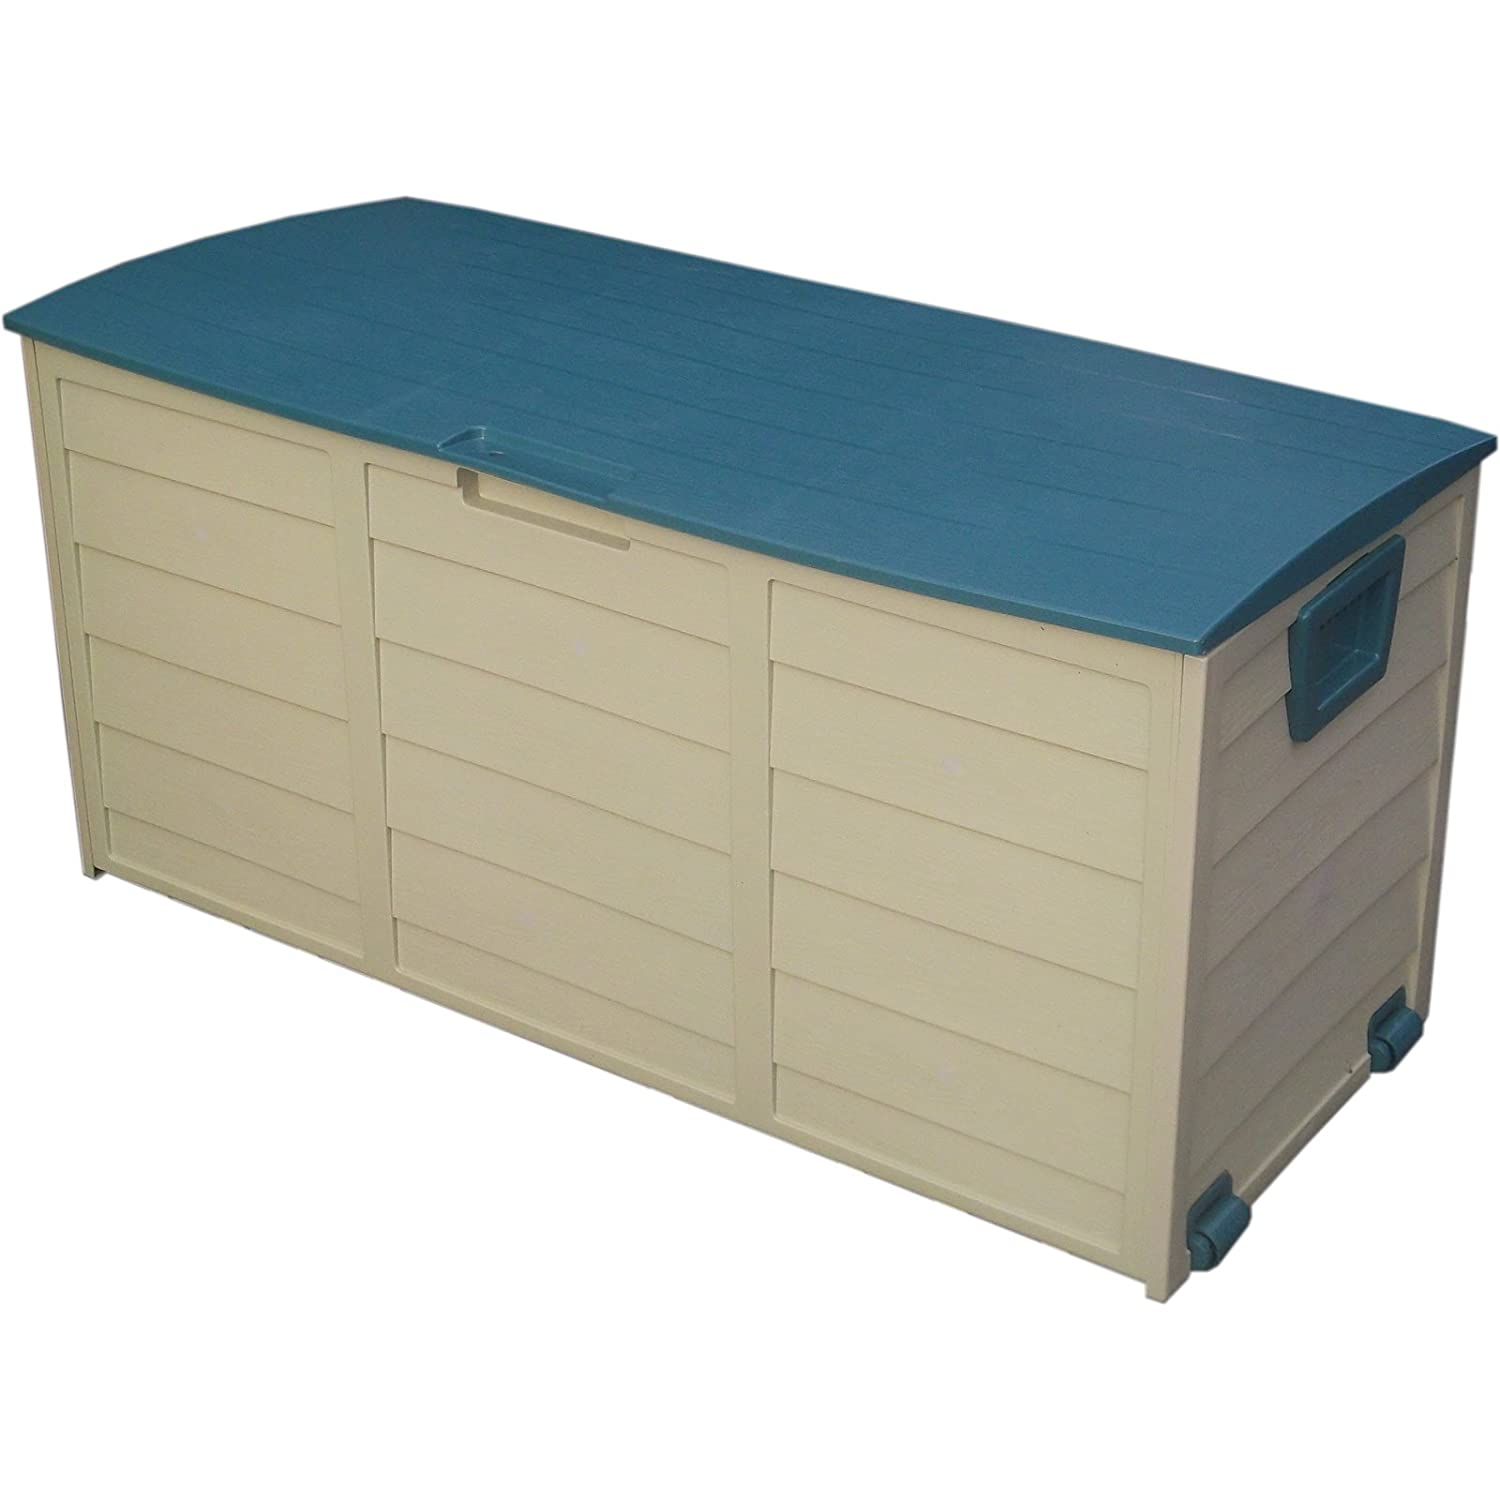 Garden shed homebase keter store it out max garden for Garden shed homebase